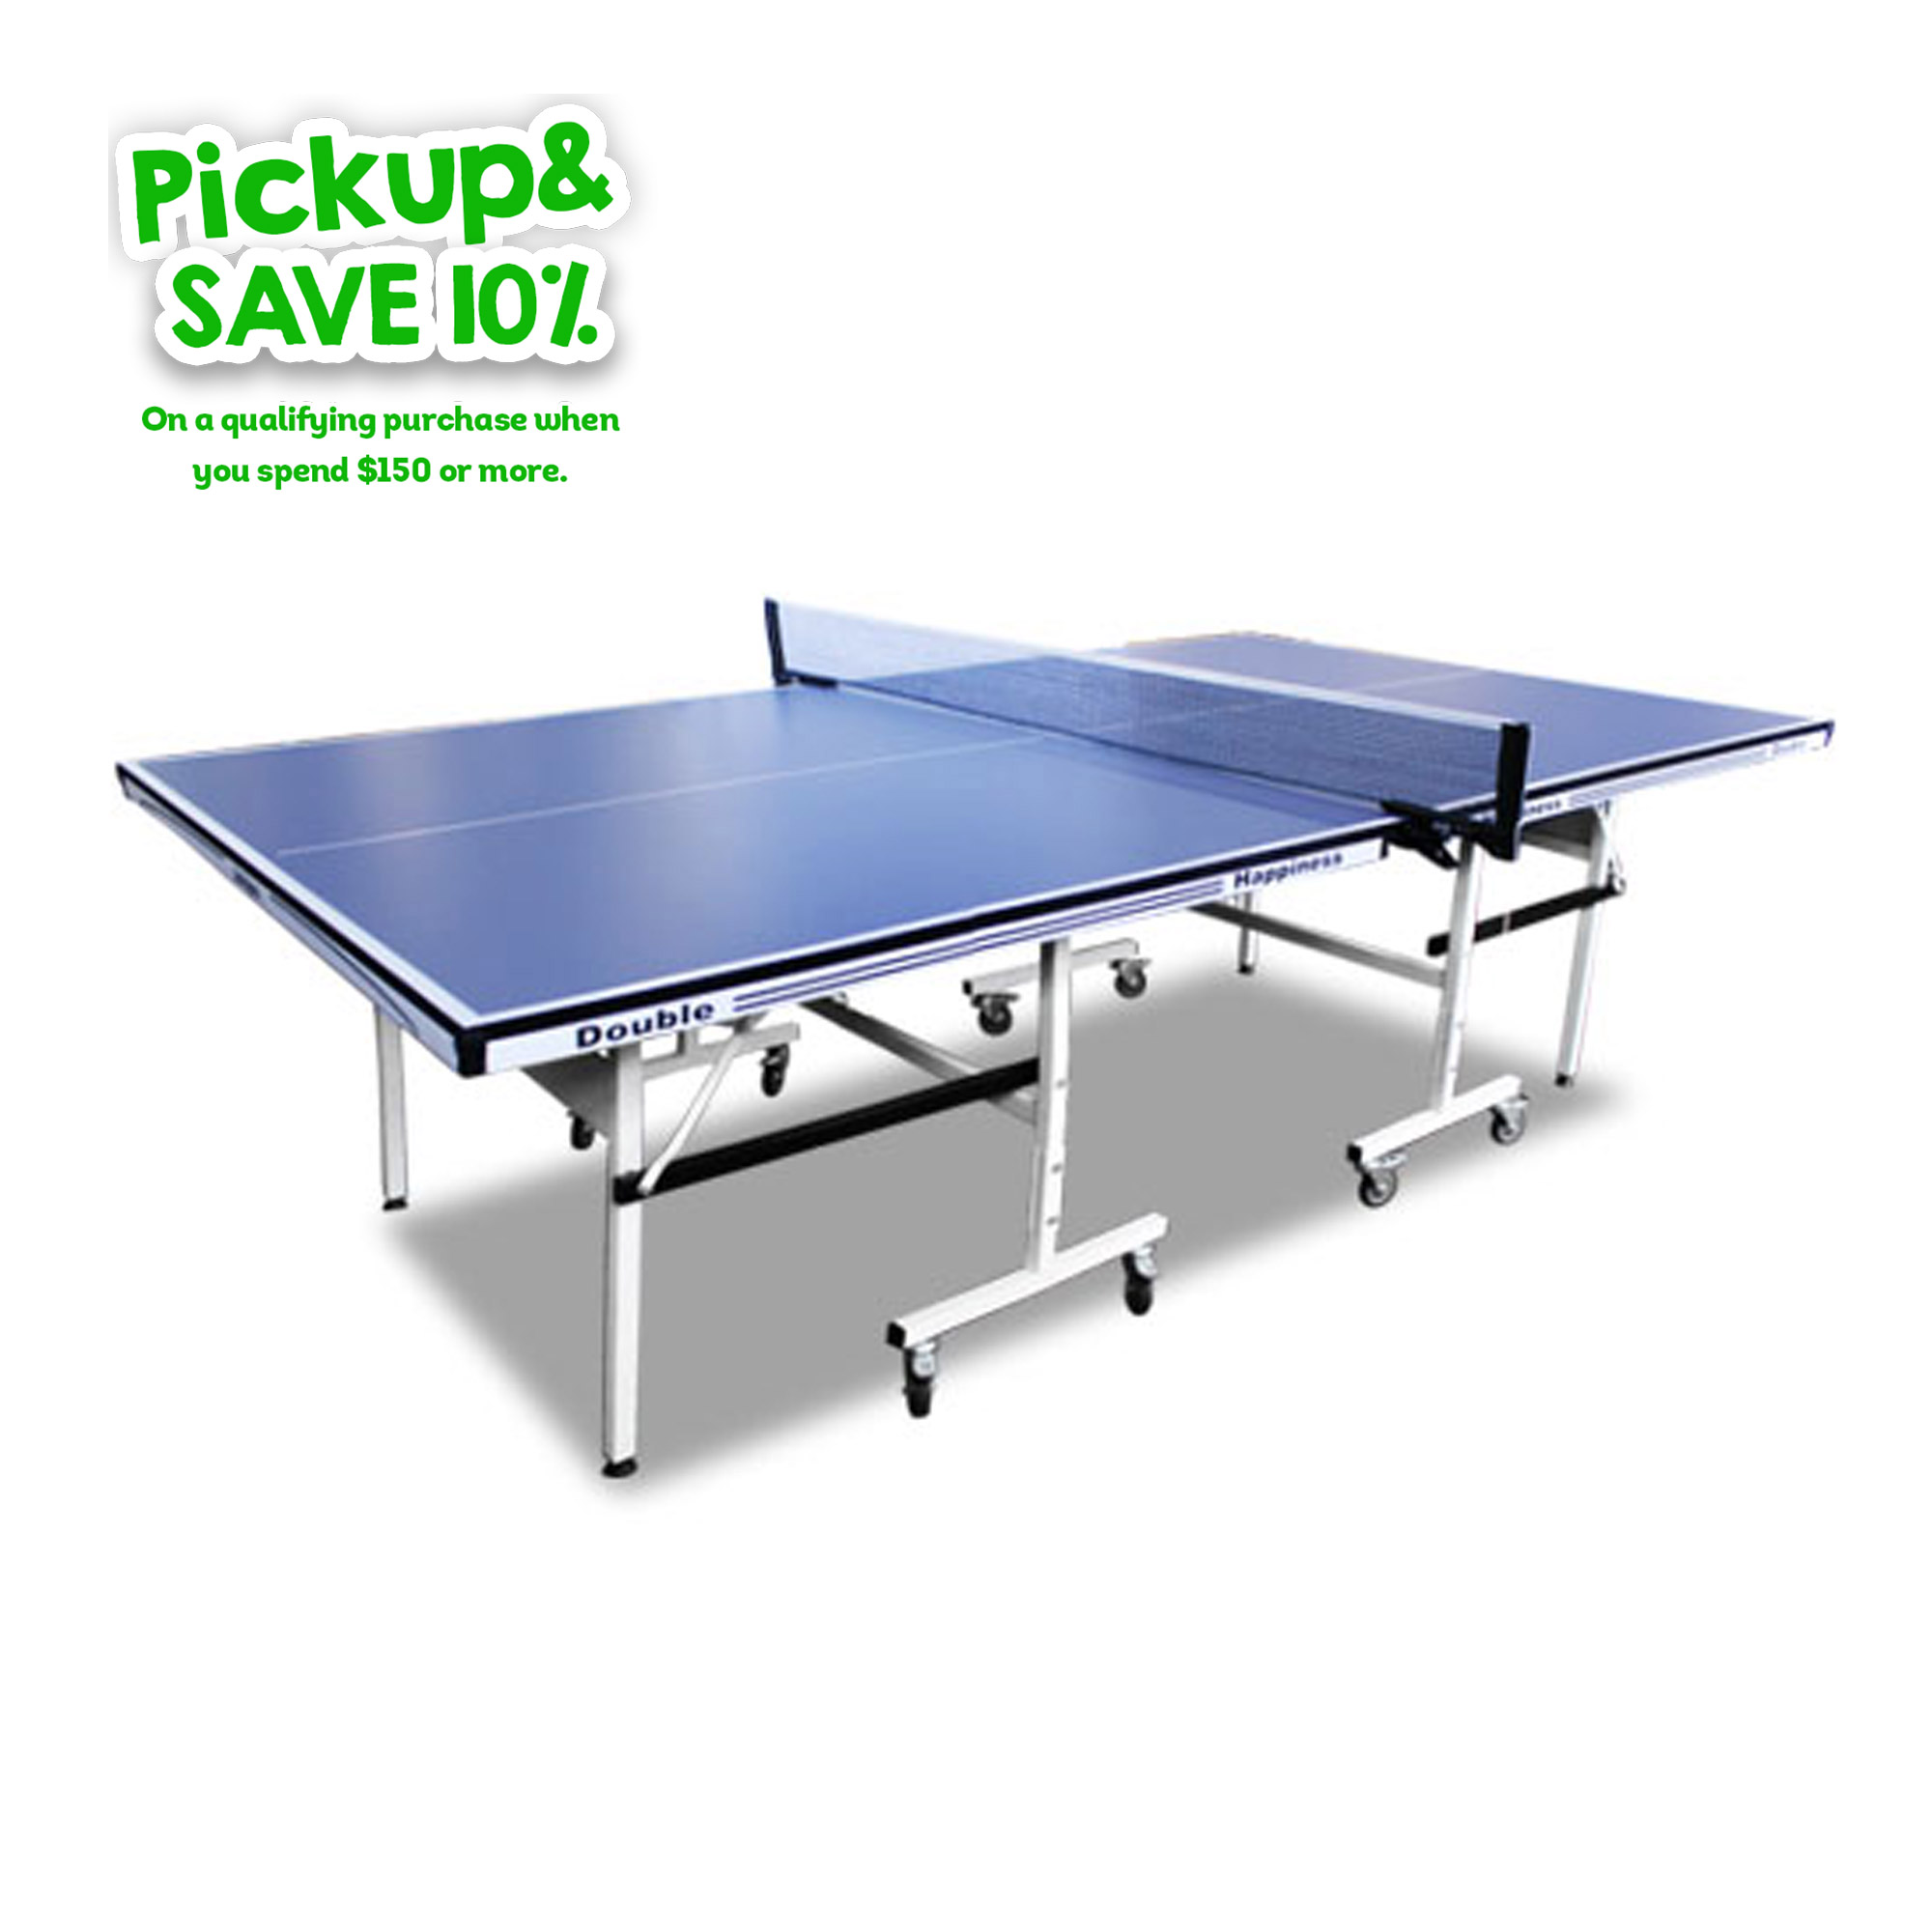 Double Happiness Indoor Premium 190 Table Tennis Ping Pong Table Blue Top with Free Accessories Package